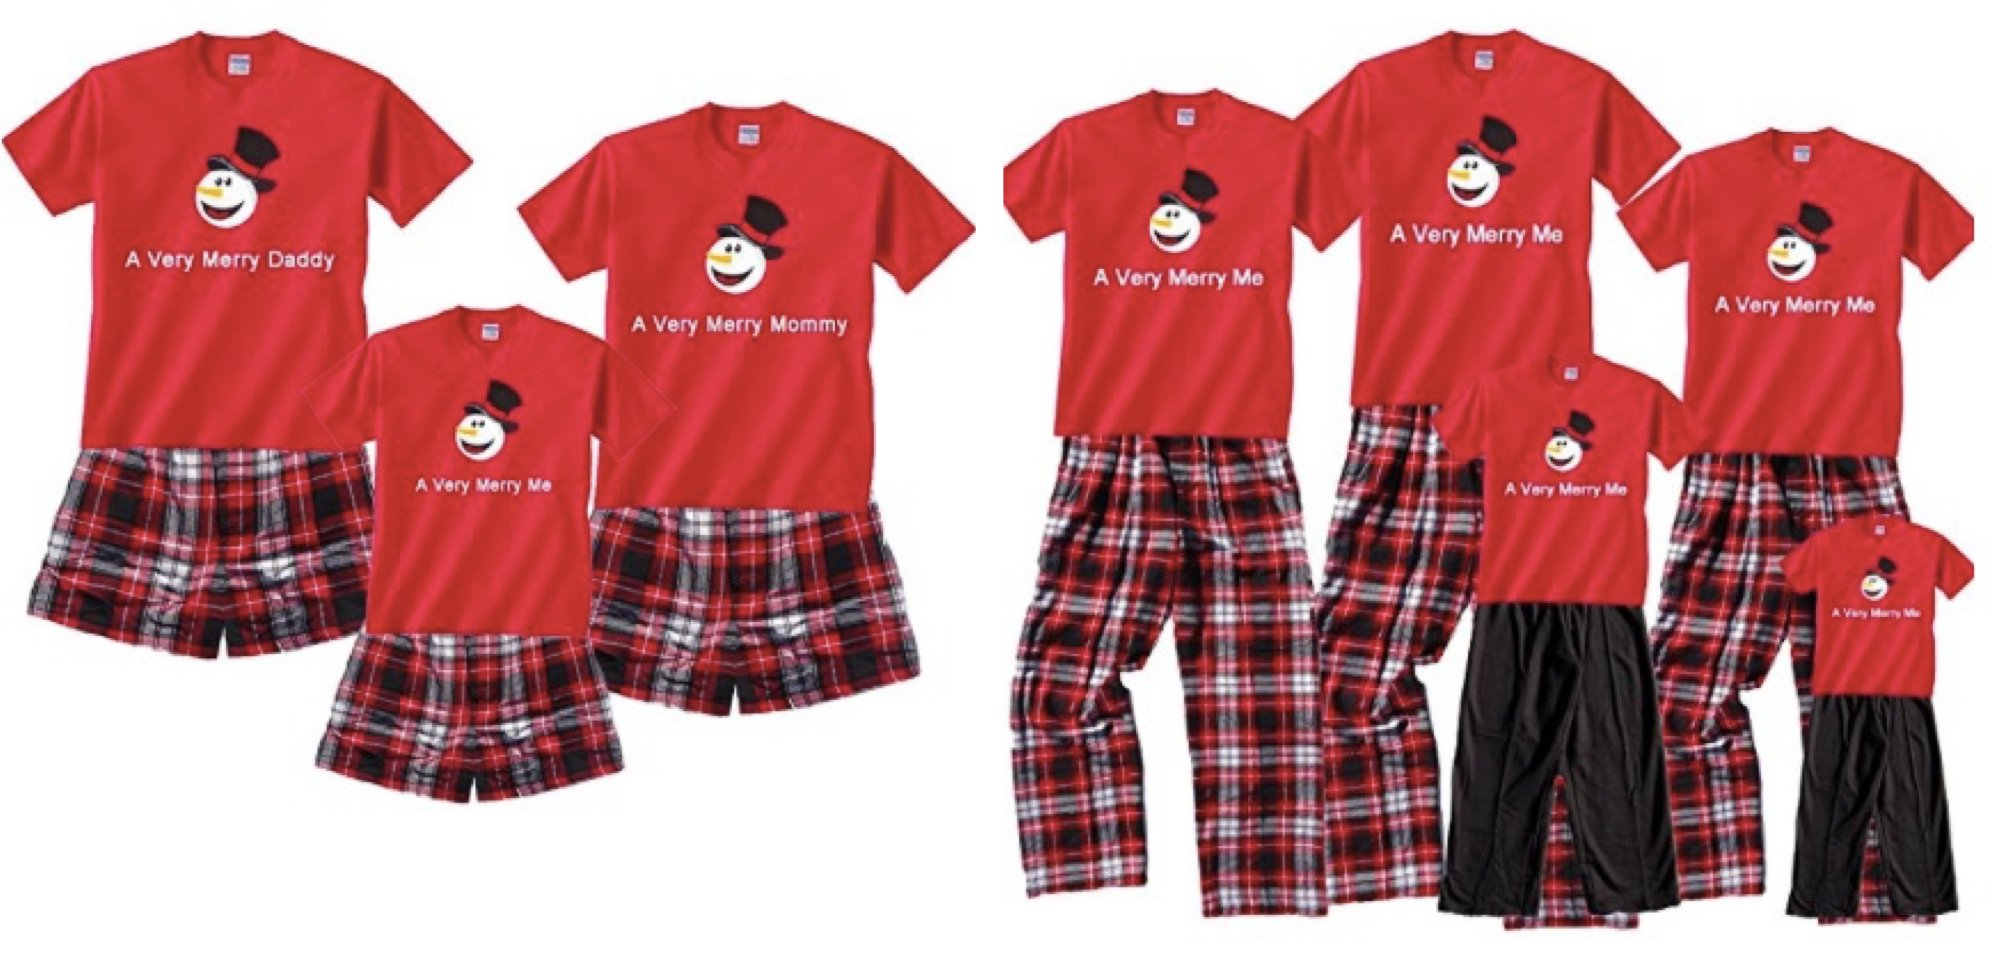 A Very Merry Me Christmas Snowman Short Sleeve Clothing Set;